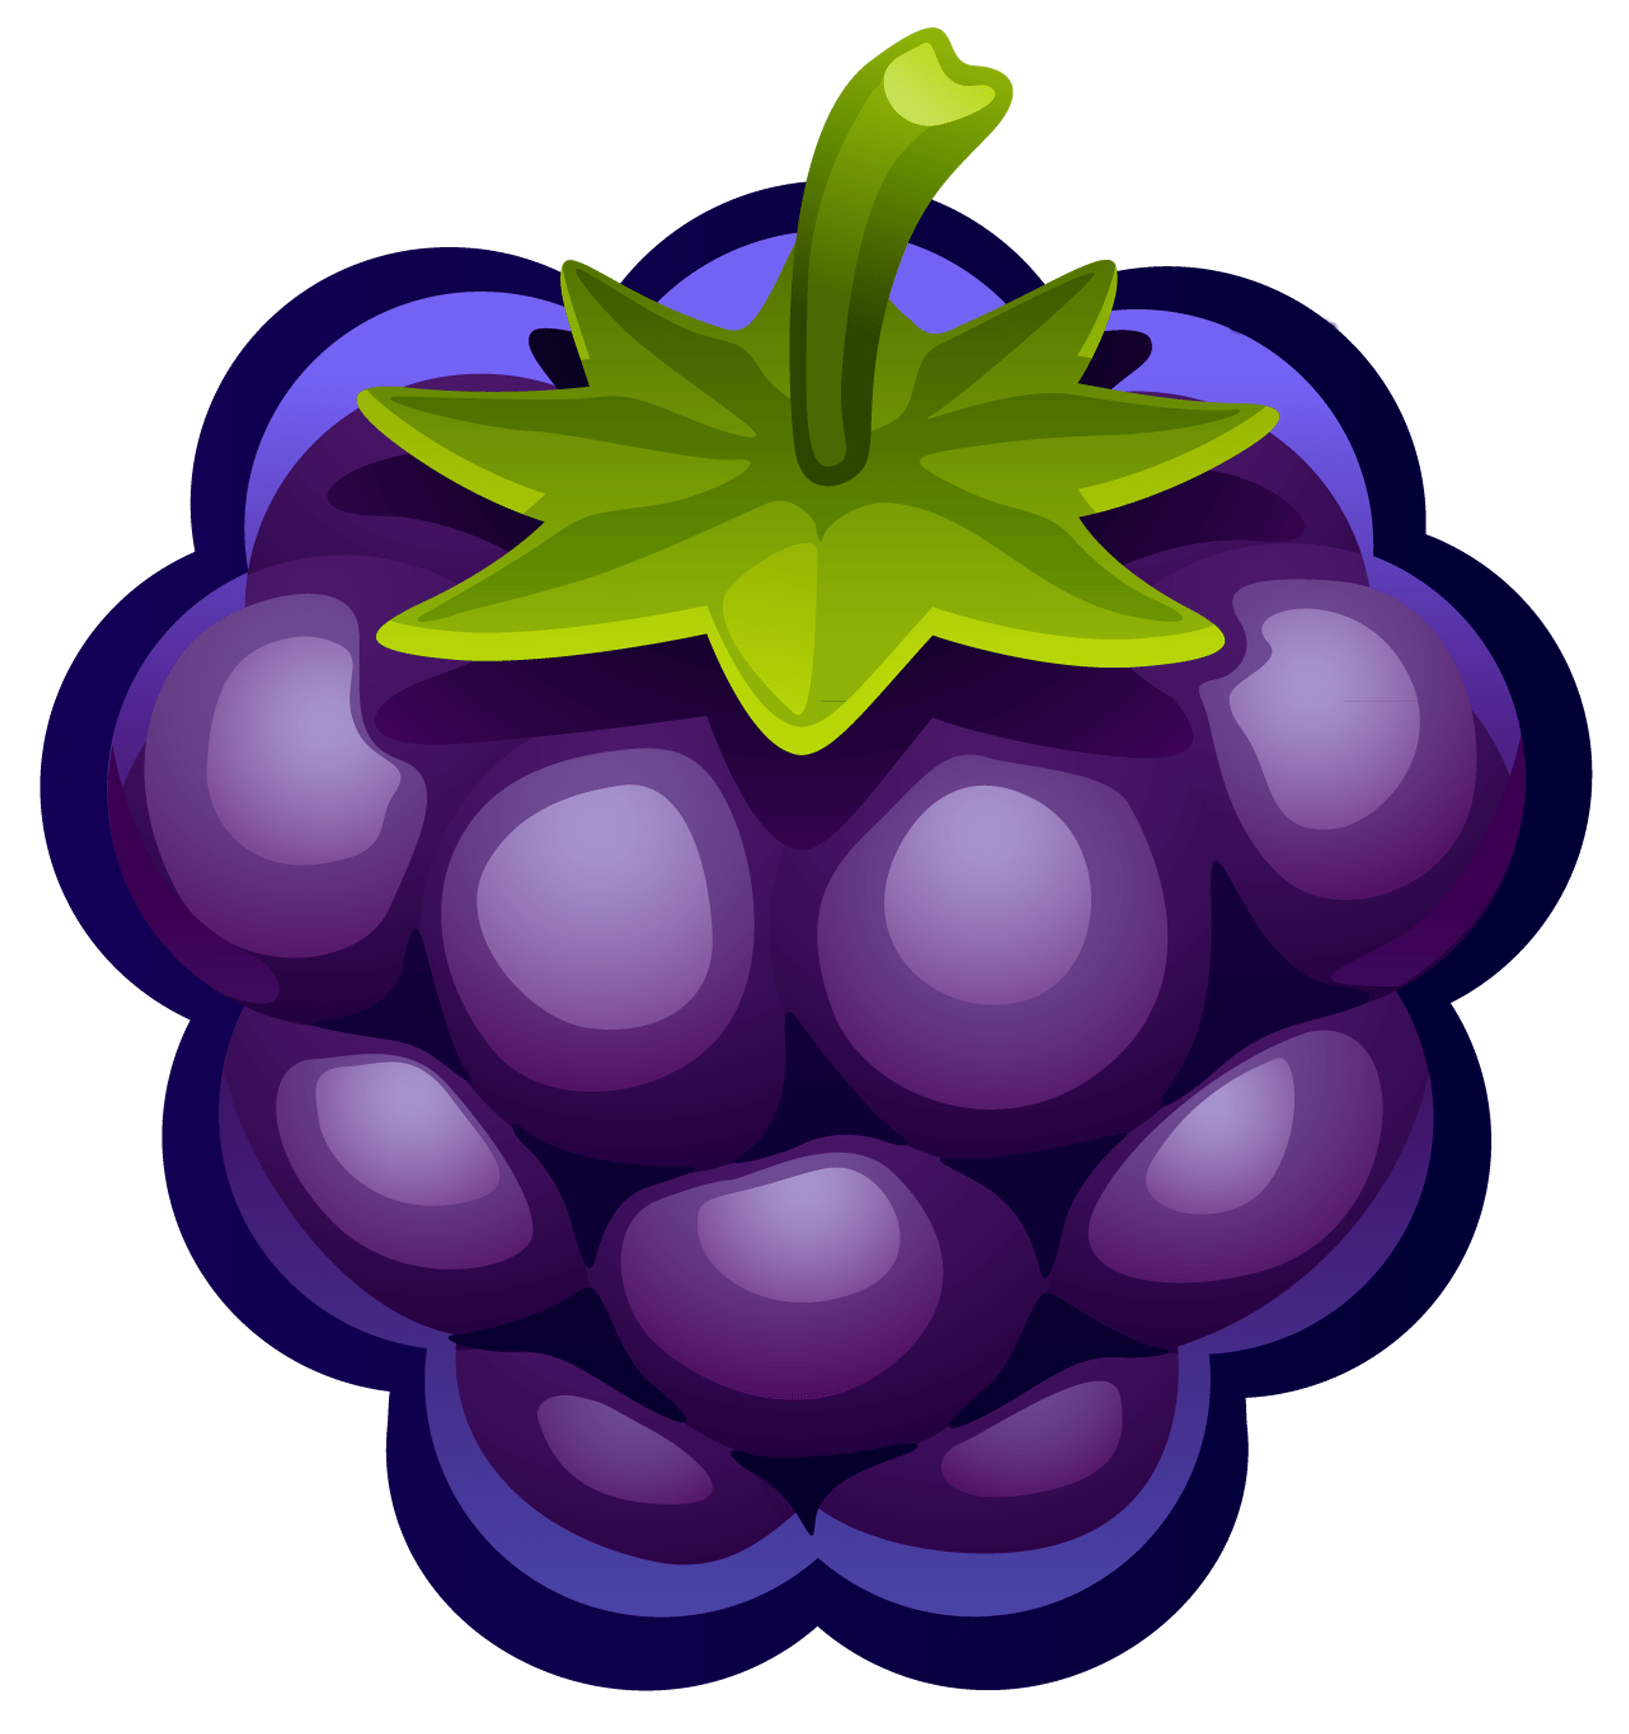 blueberry clipart purple berry